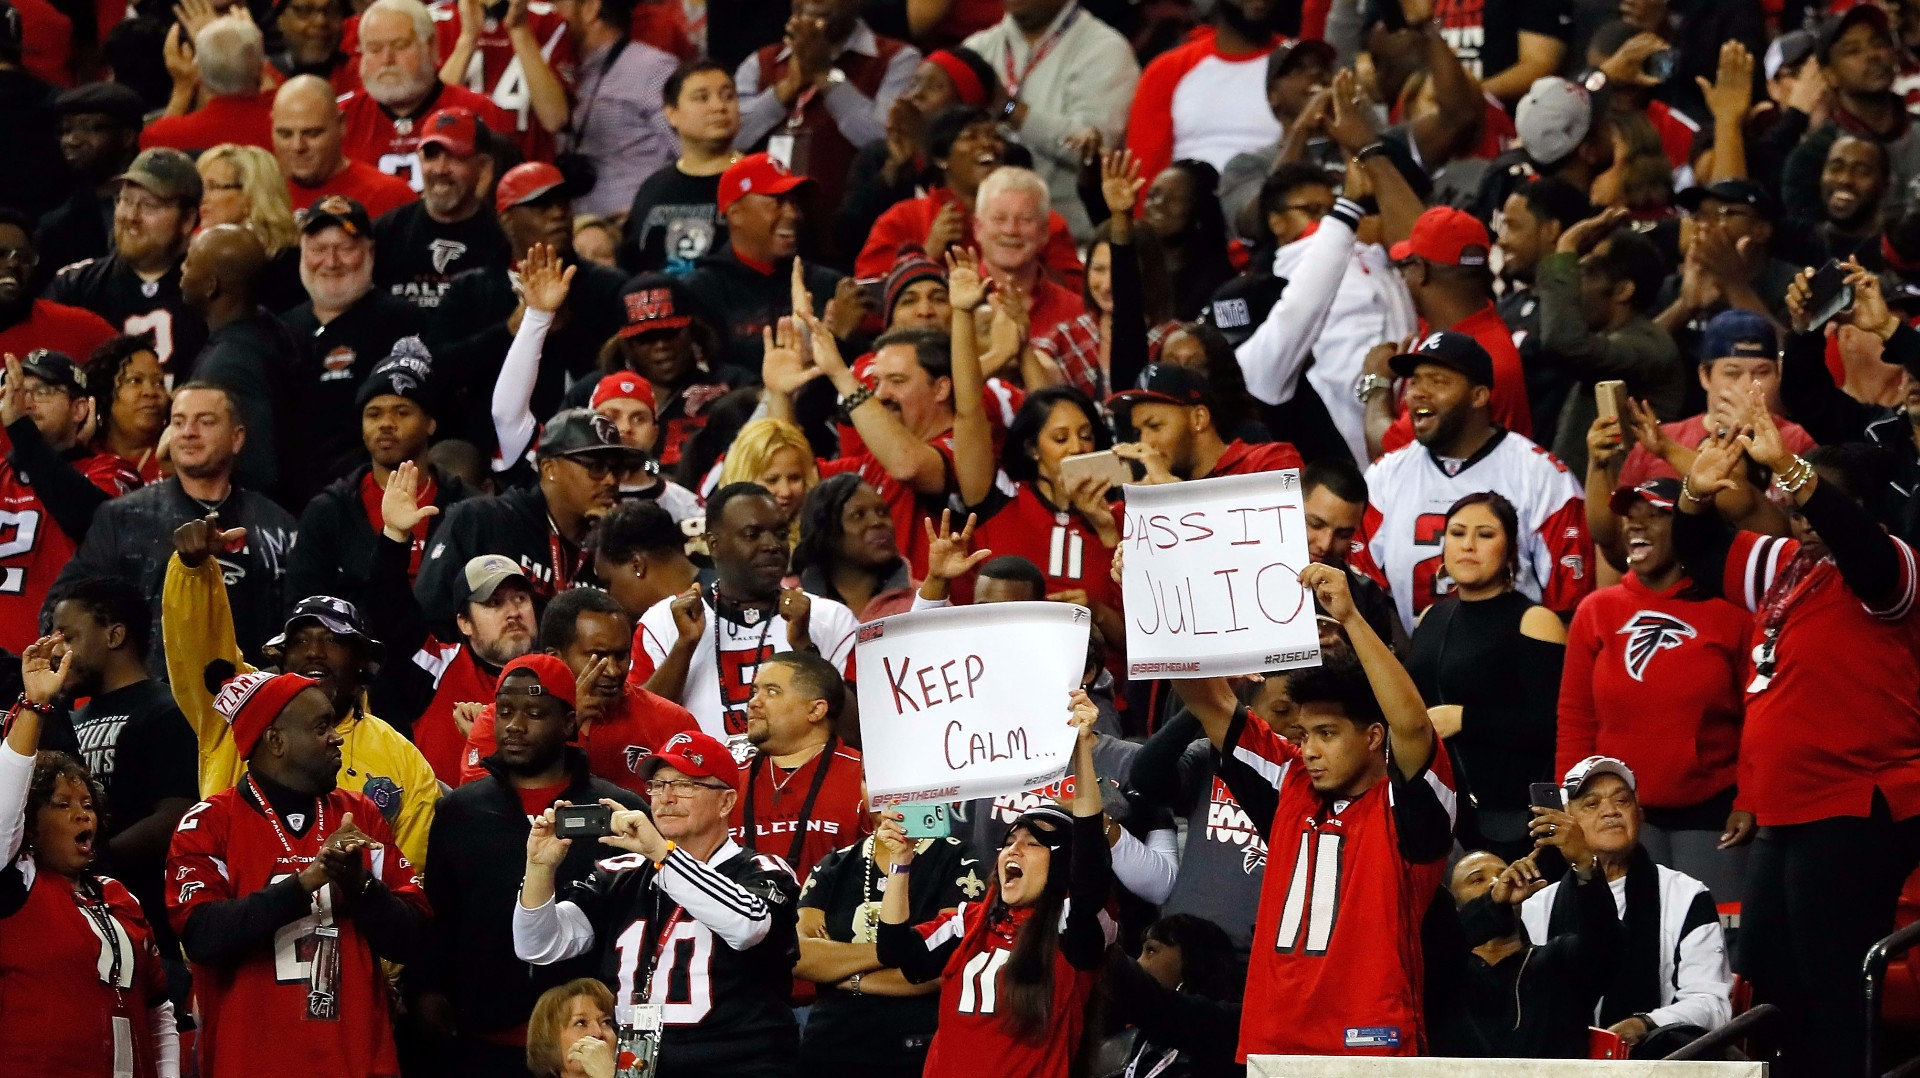 Alivecom Falcons Playoff Game Nearly Sold Out Resale Ticket - Atlanta falcons us fan map